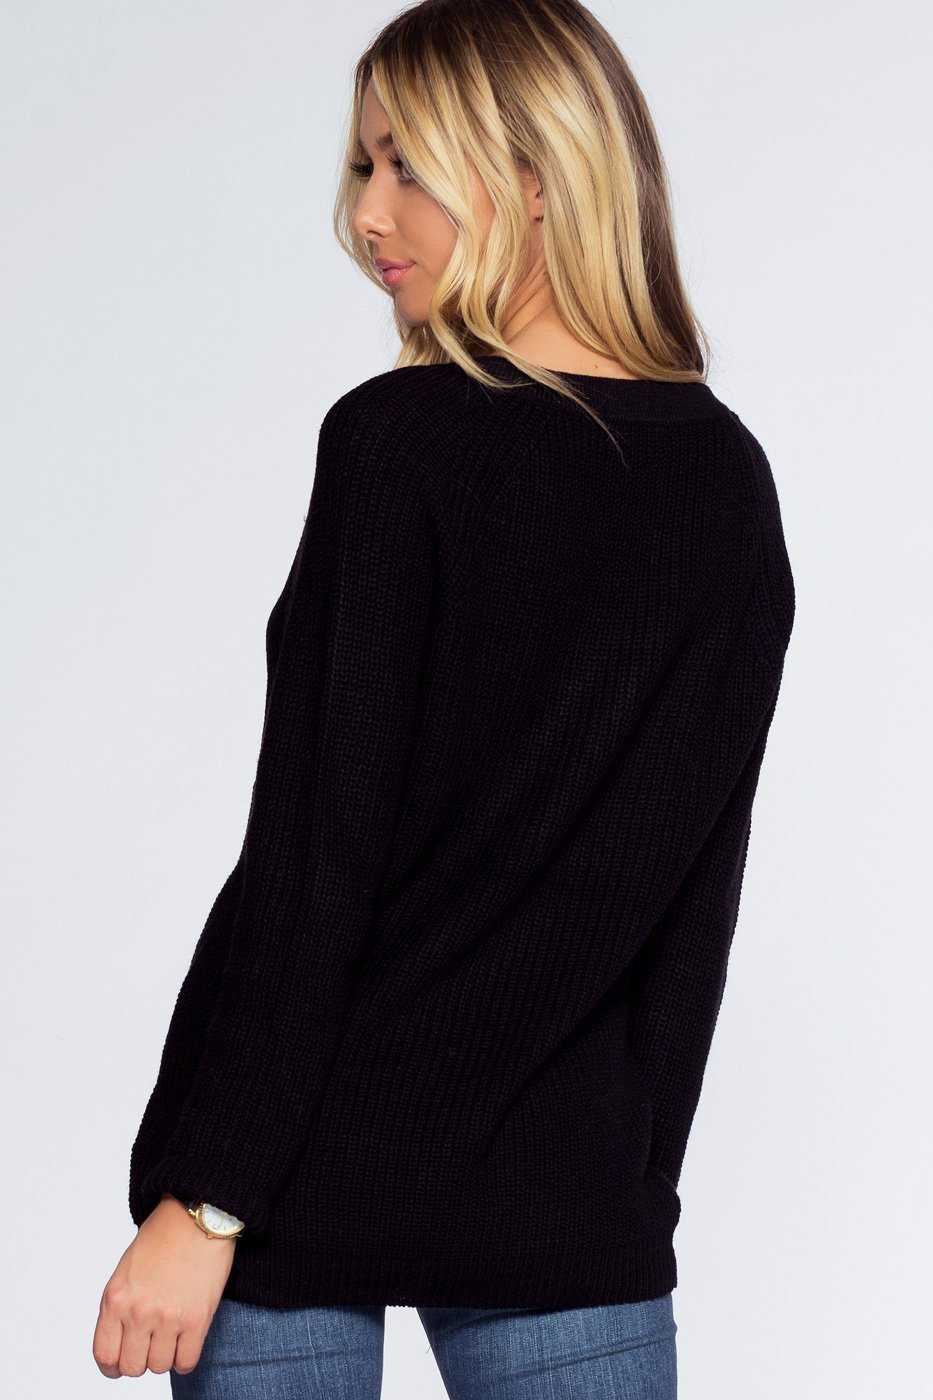 Sweaters - Elsa Lace Up Sweater - Black